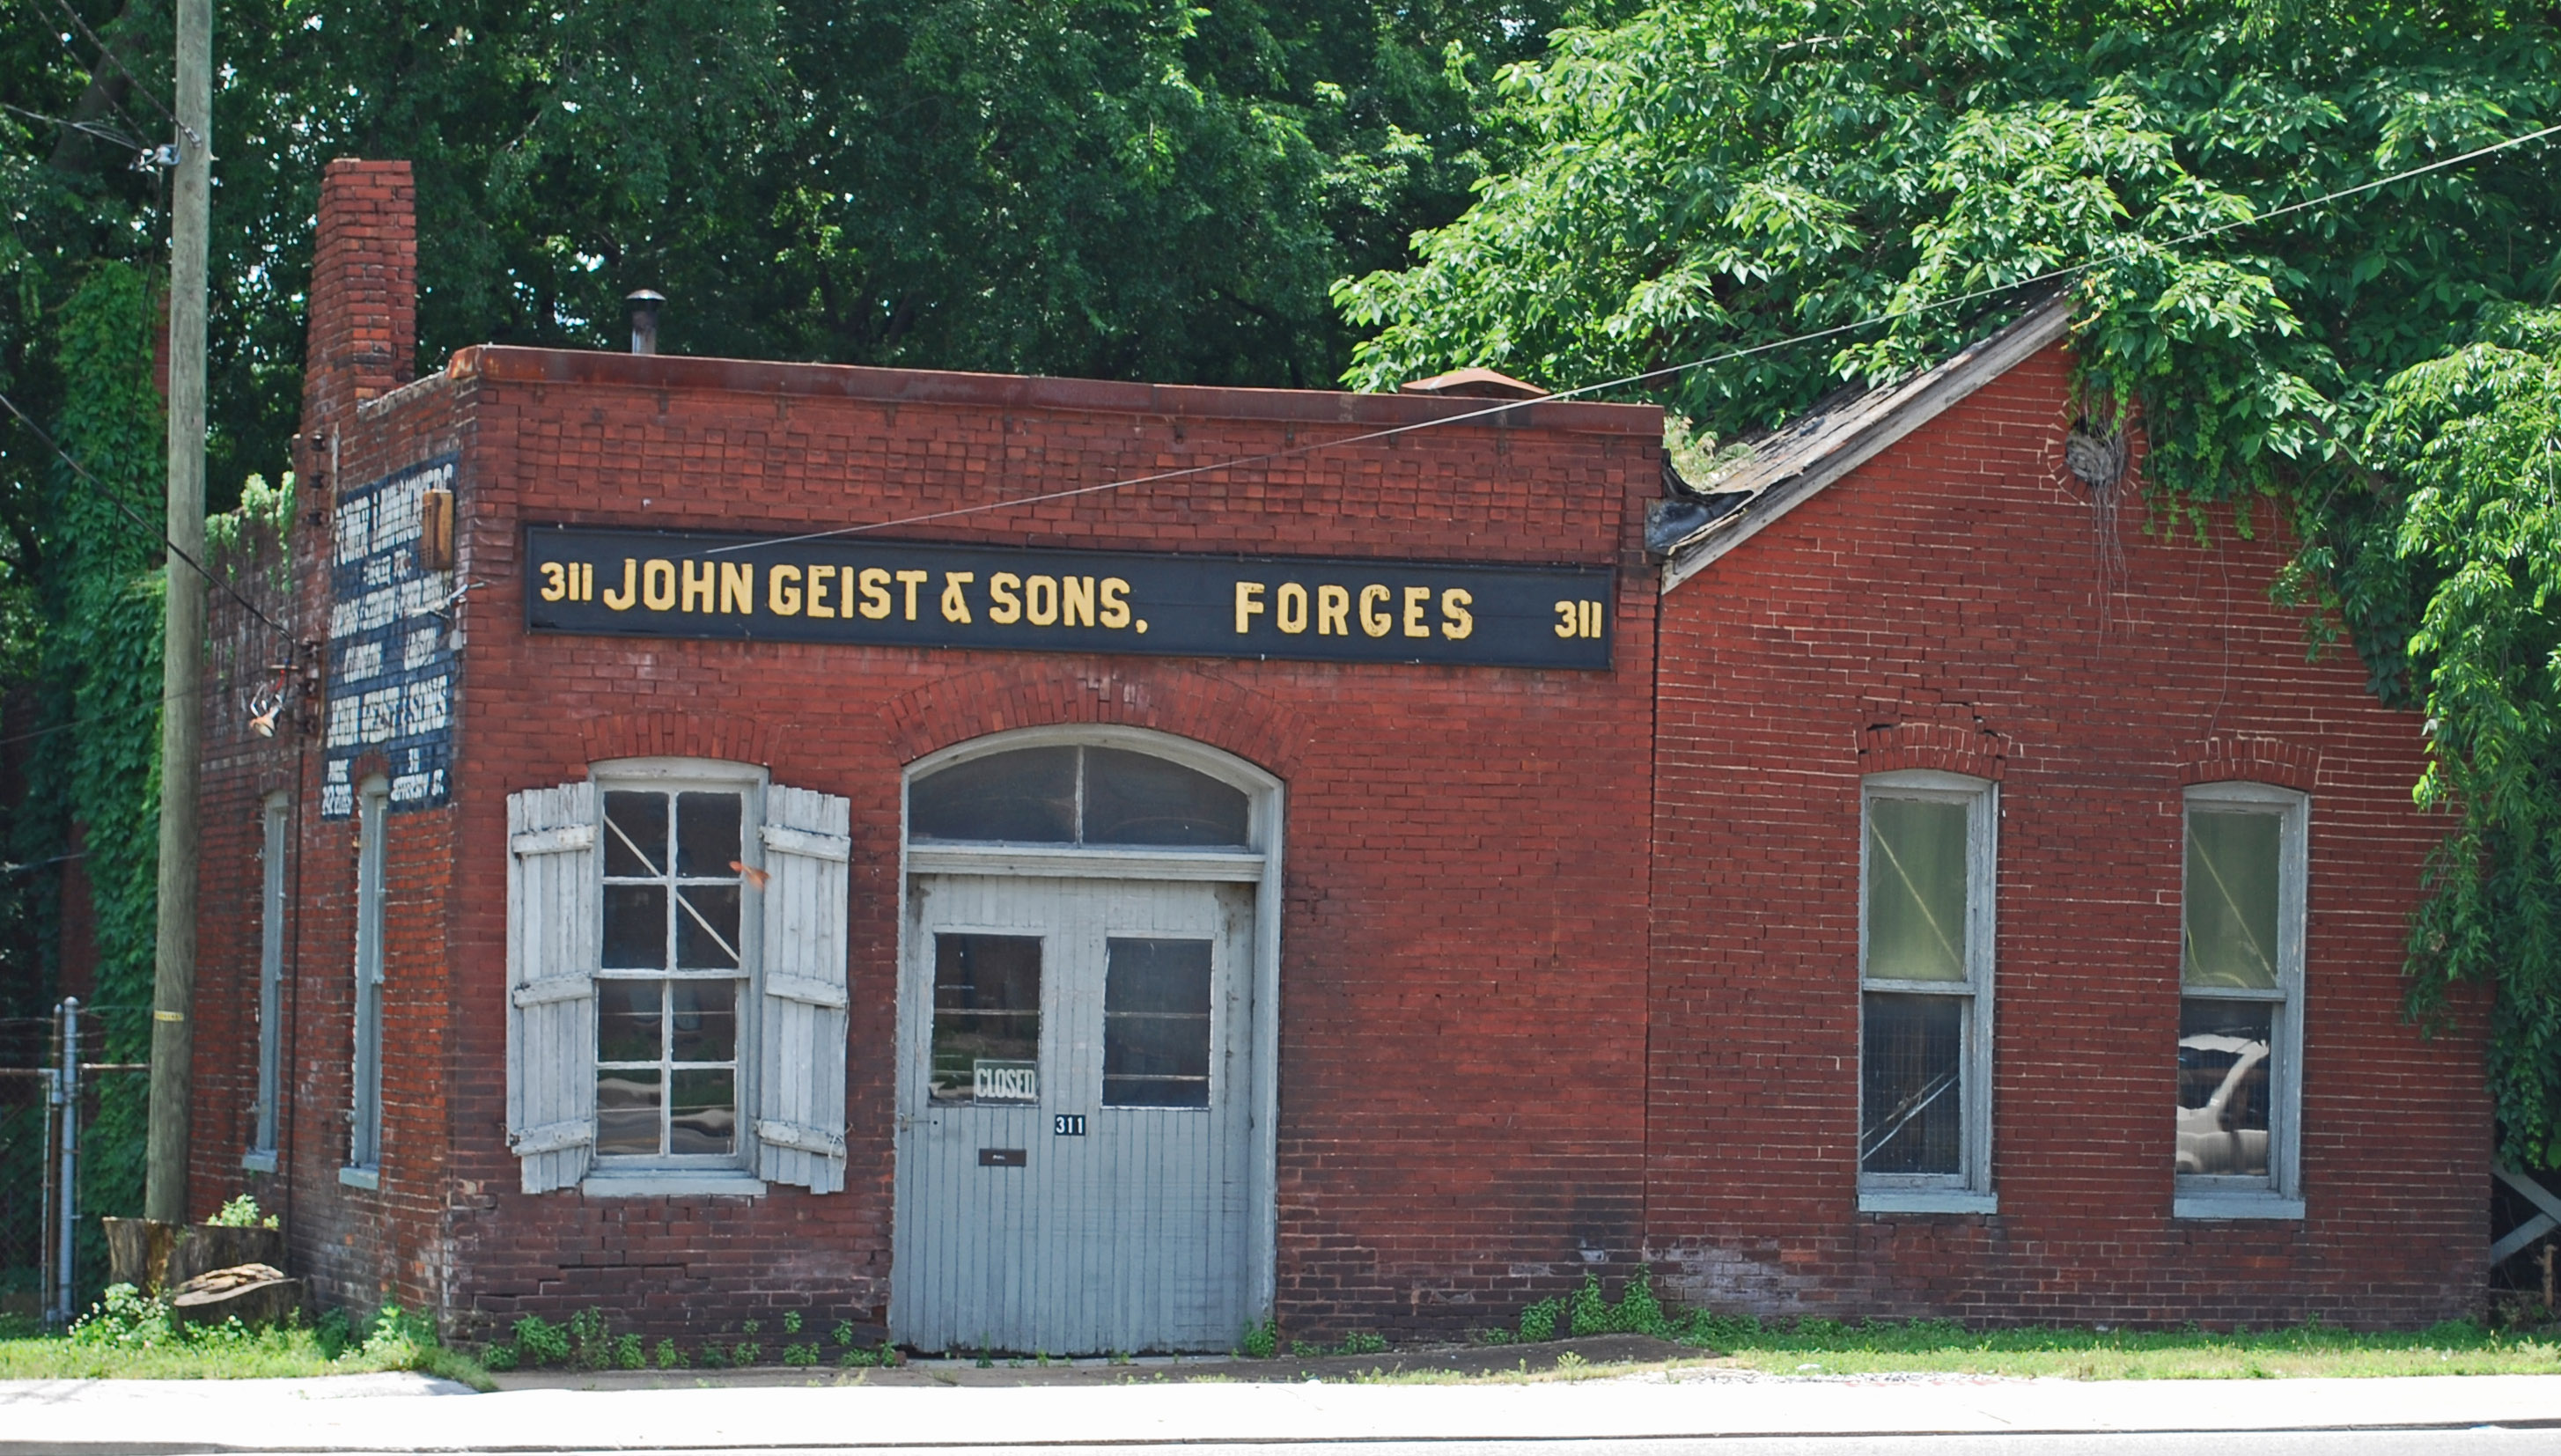 The John Geist Blacksmith Shop with attached residence (image from Wikimedia)